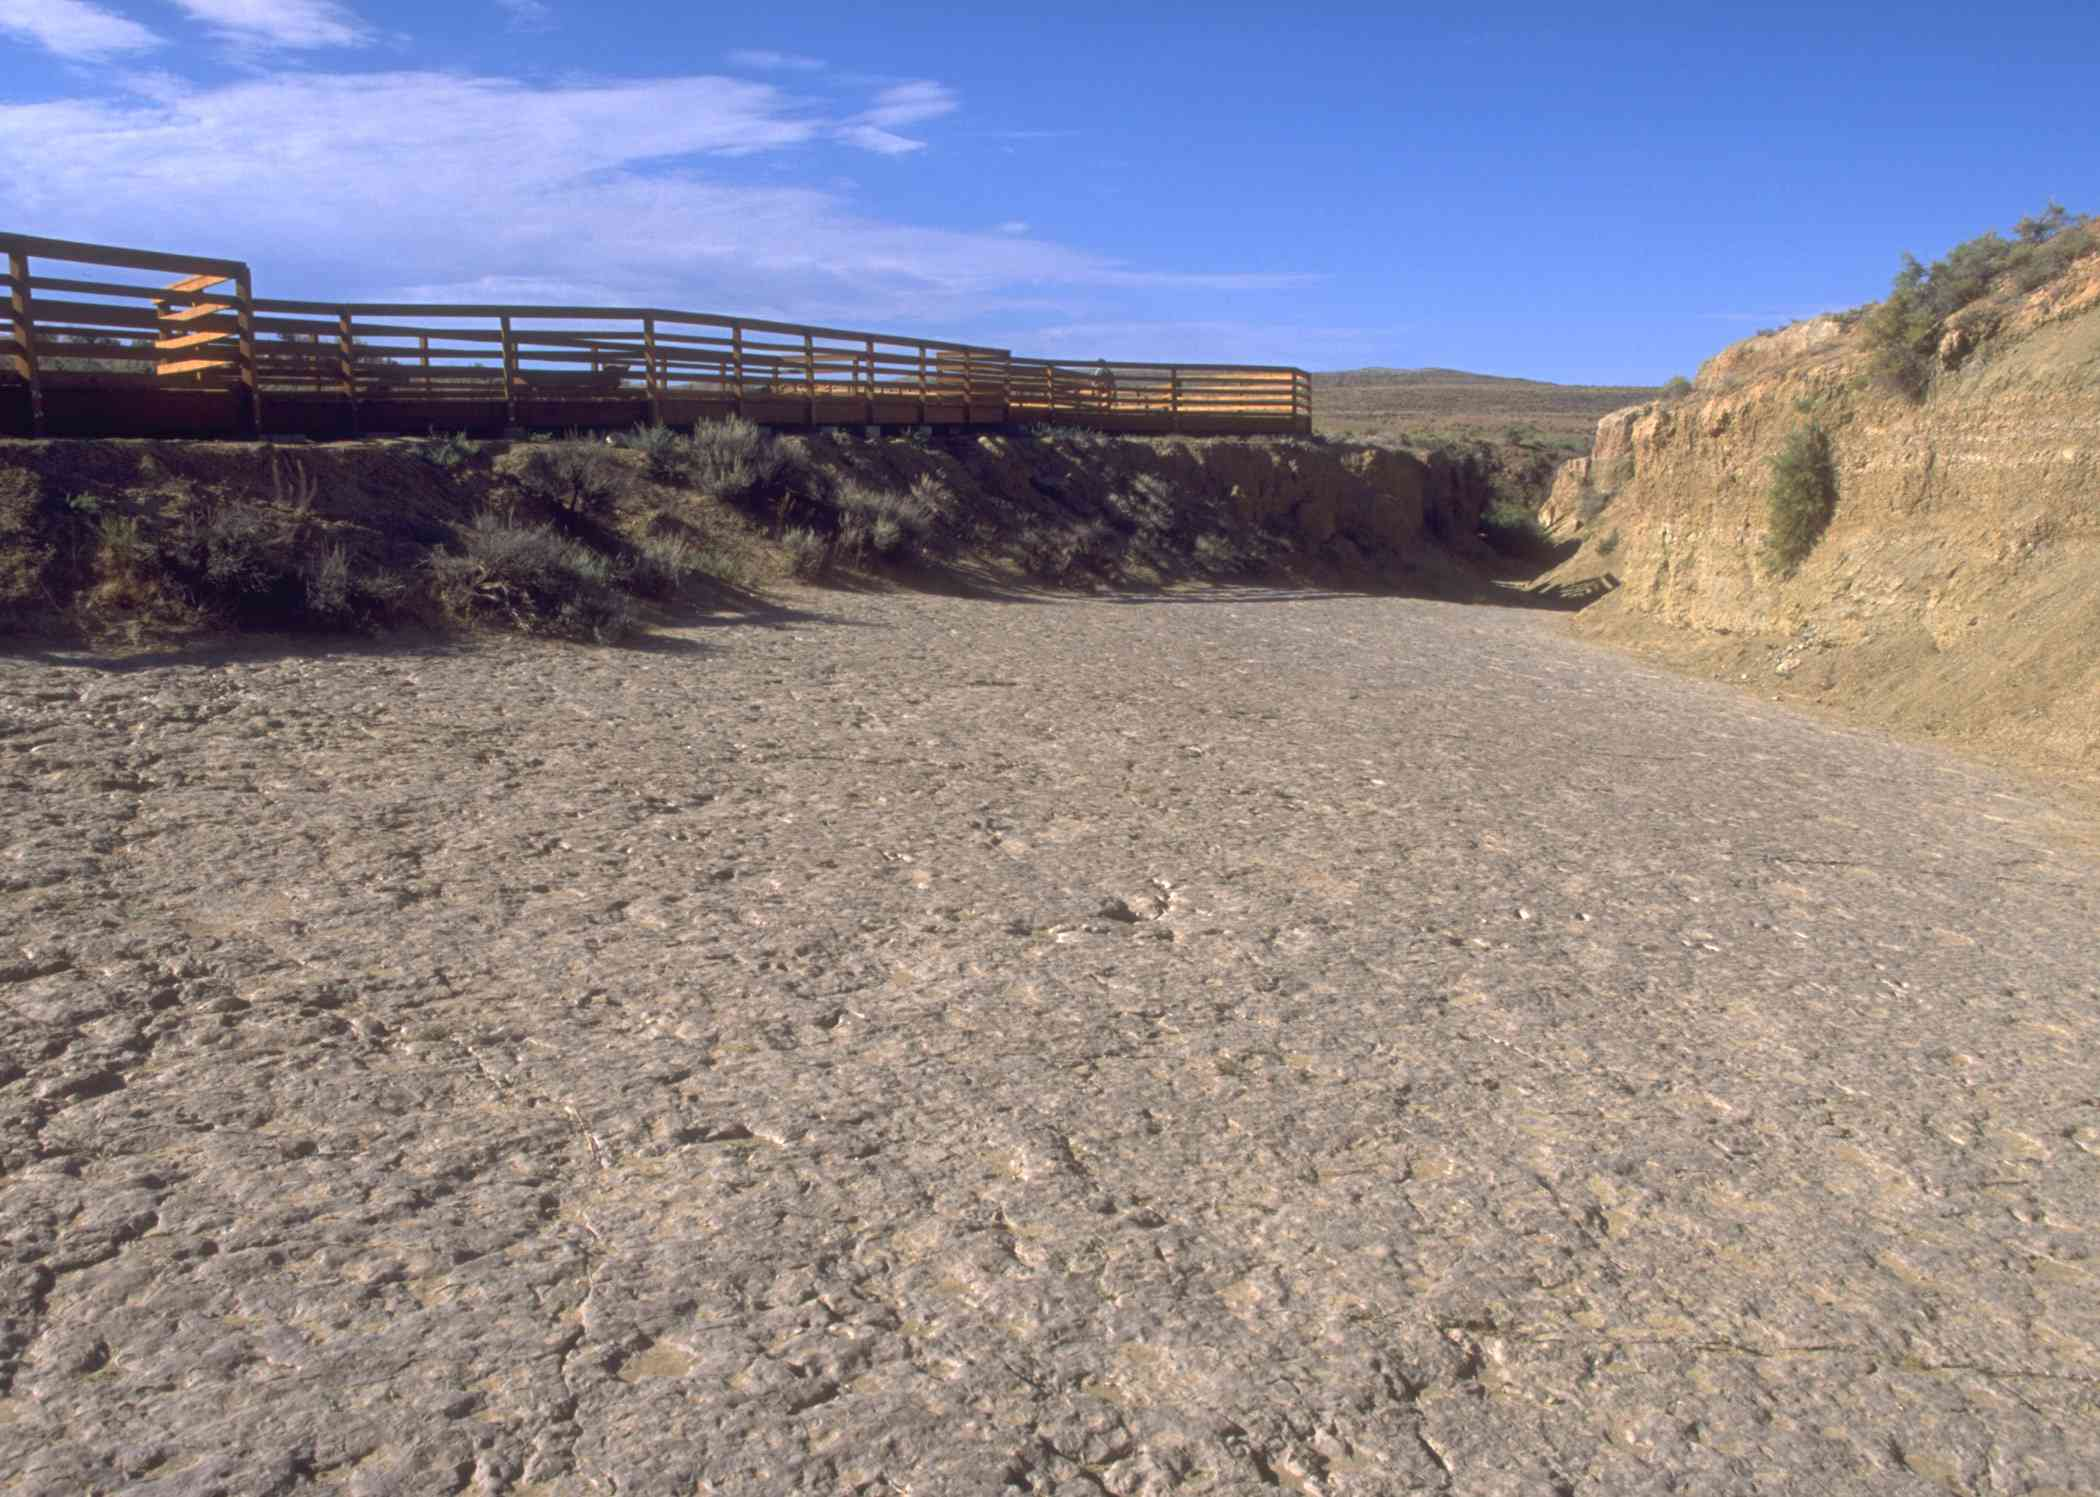 A rocky plain covered with fossilized tracks in front of an observation deck